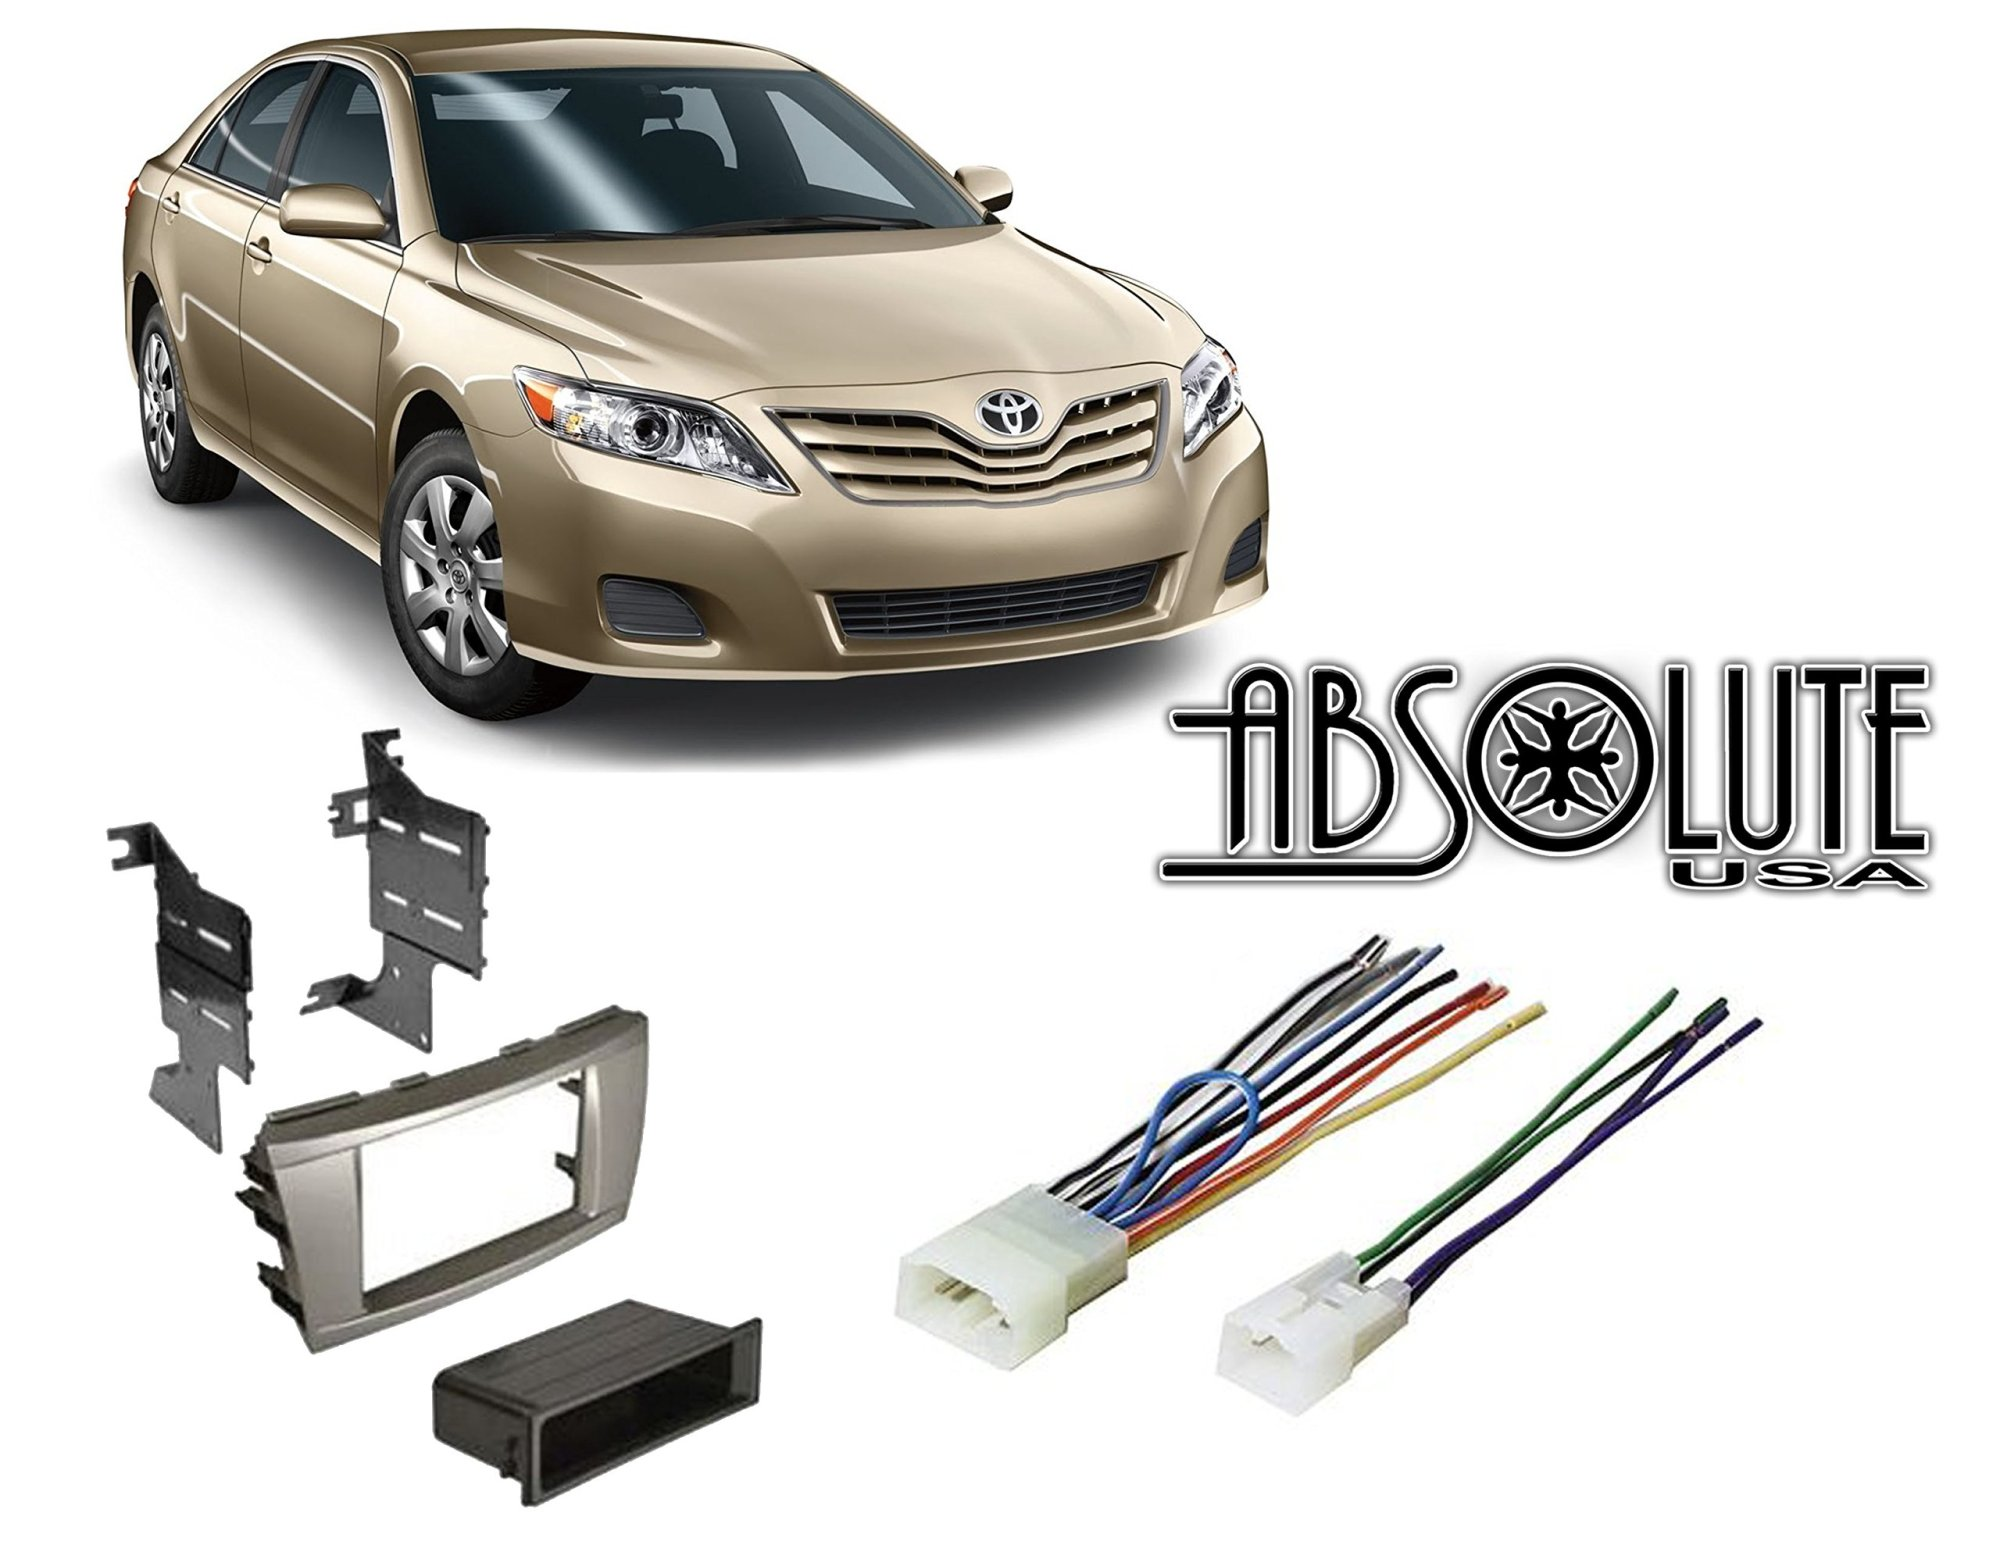 hight resolution of absolute radiokitpkg9 fits toyota camry 2007 2011 double din stereo harness radio install dash kit